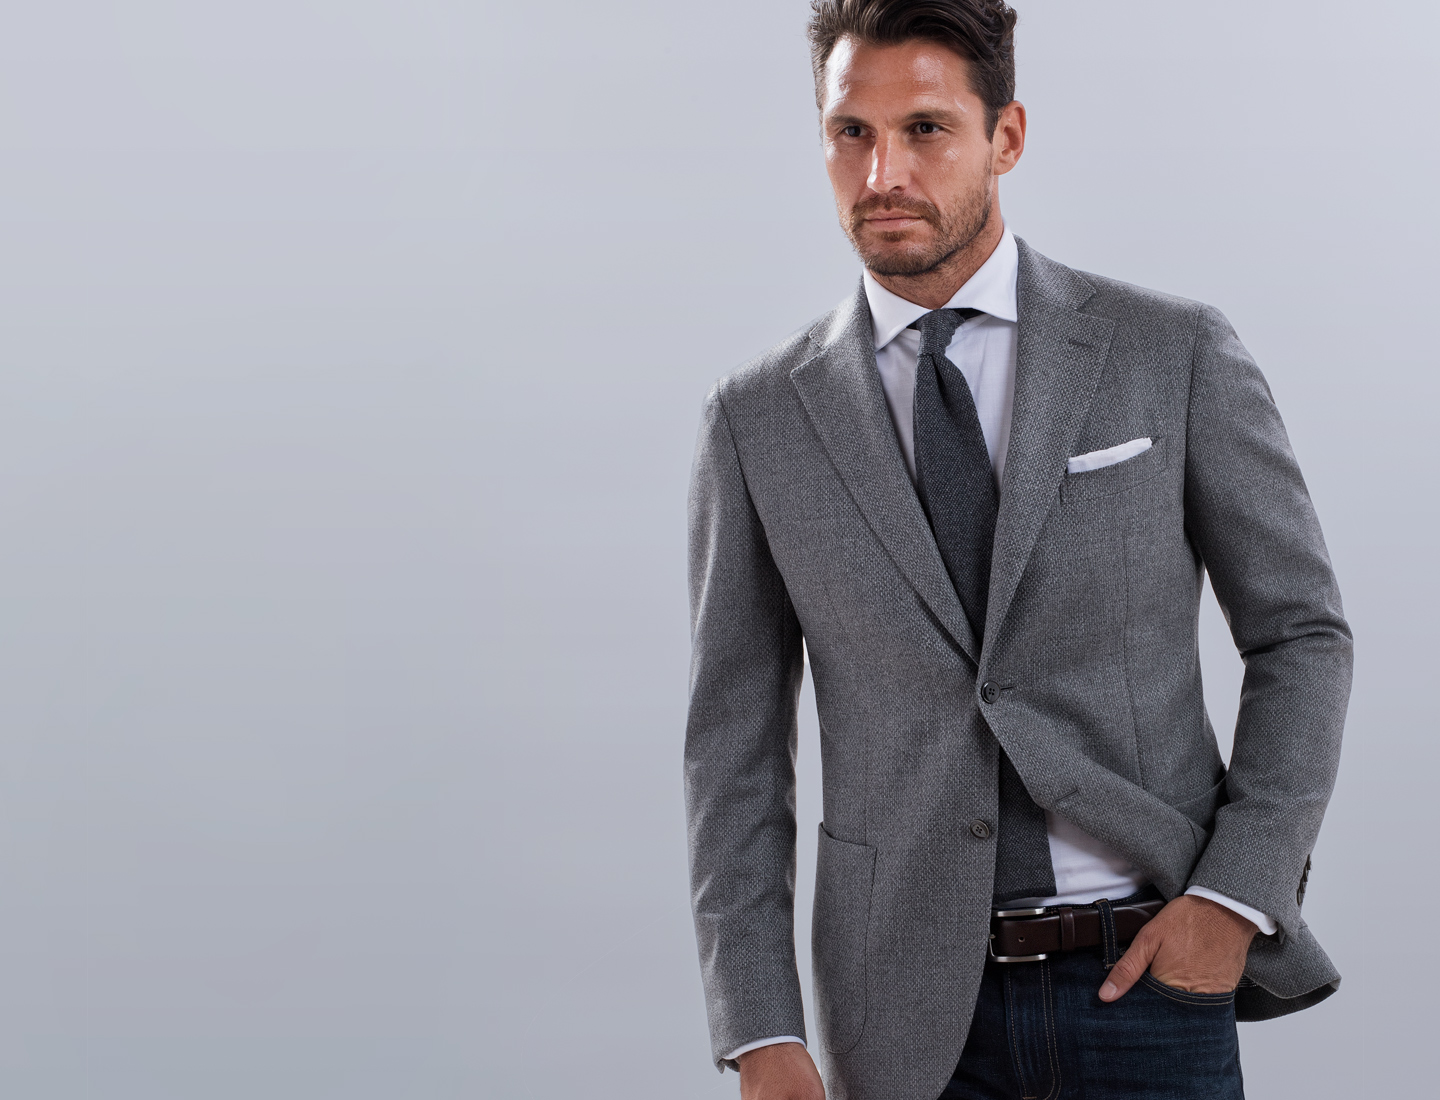 Genova Jackets & Sport Coats - Proper Cloth